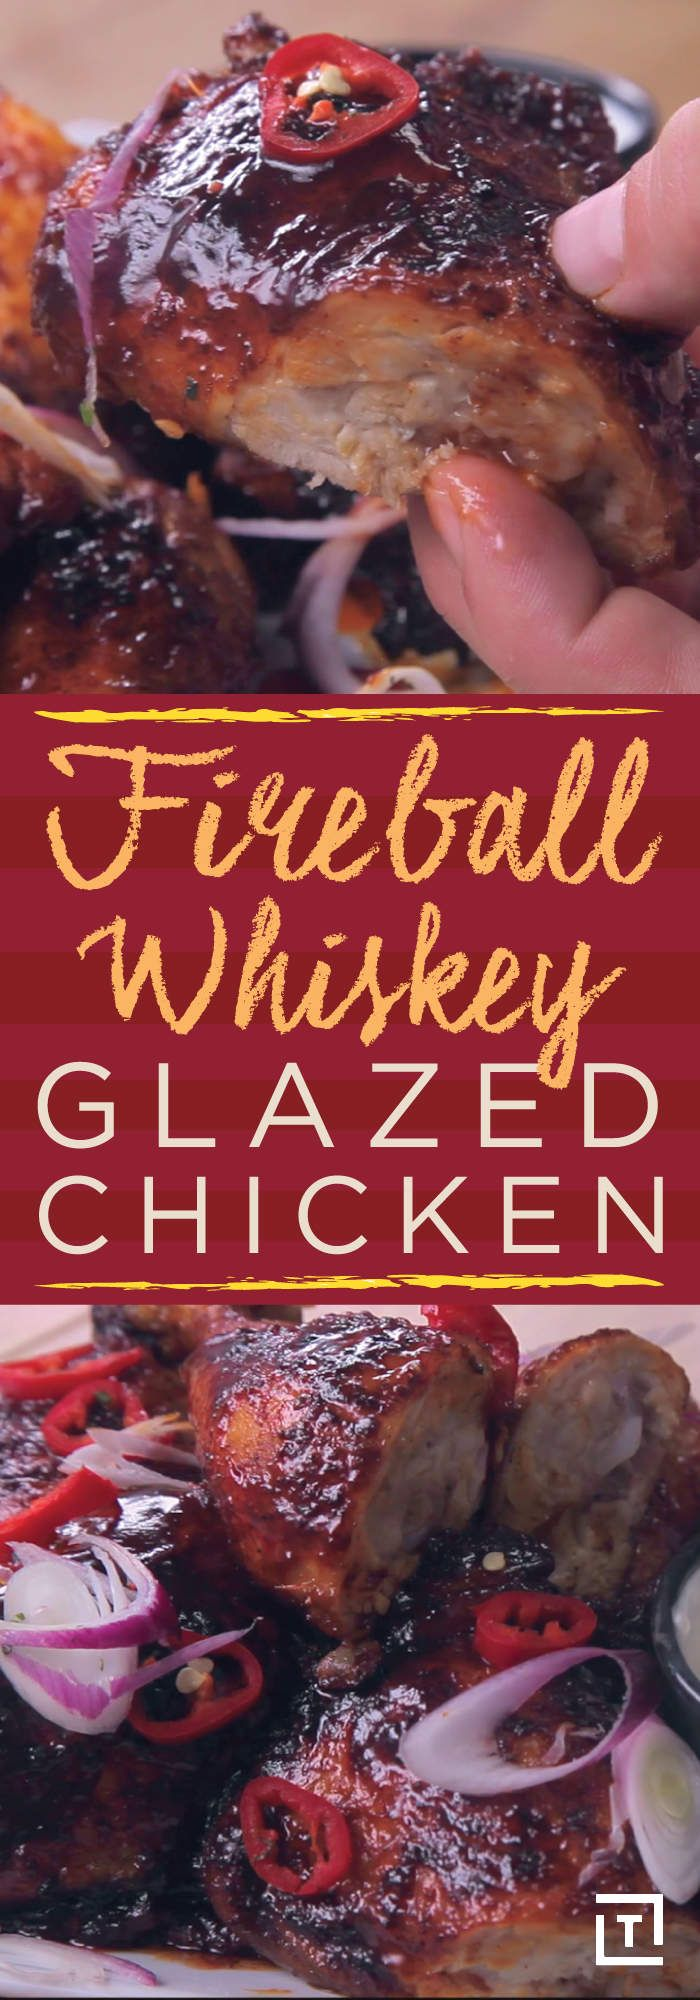 Photo of Step Up Your Glaze Game With This Fireball Whiskey-Obsessed Chicken